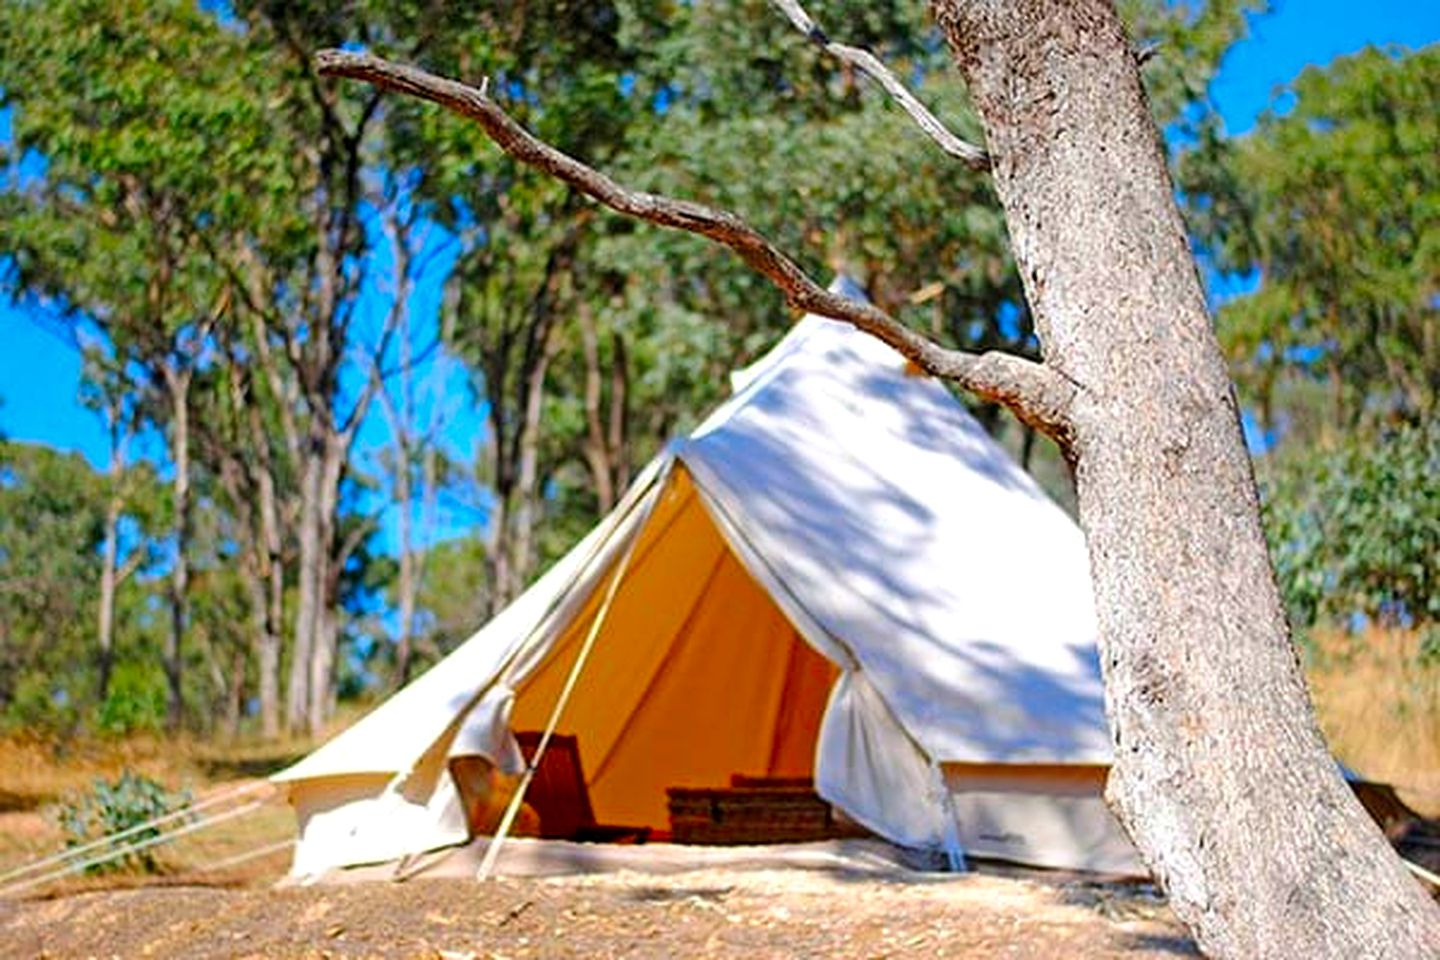 Come and try bell tent glamping in this lovely tent rental, surrounded by nature and located on a luxury camping site, perfect for romantic getaways